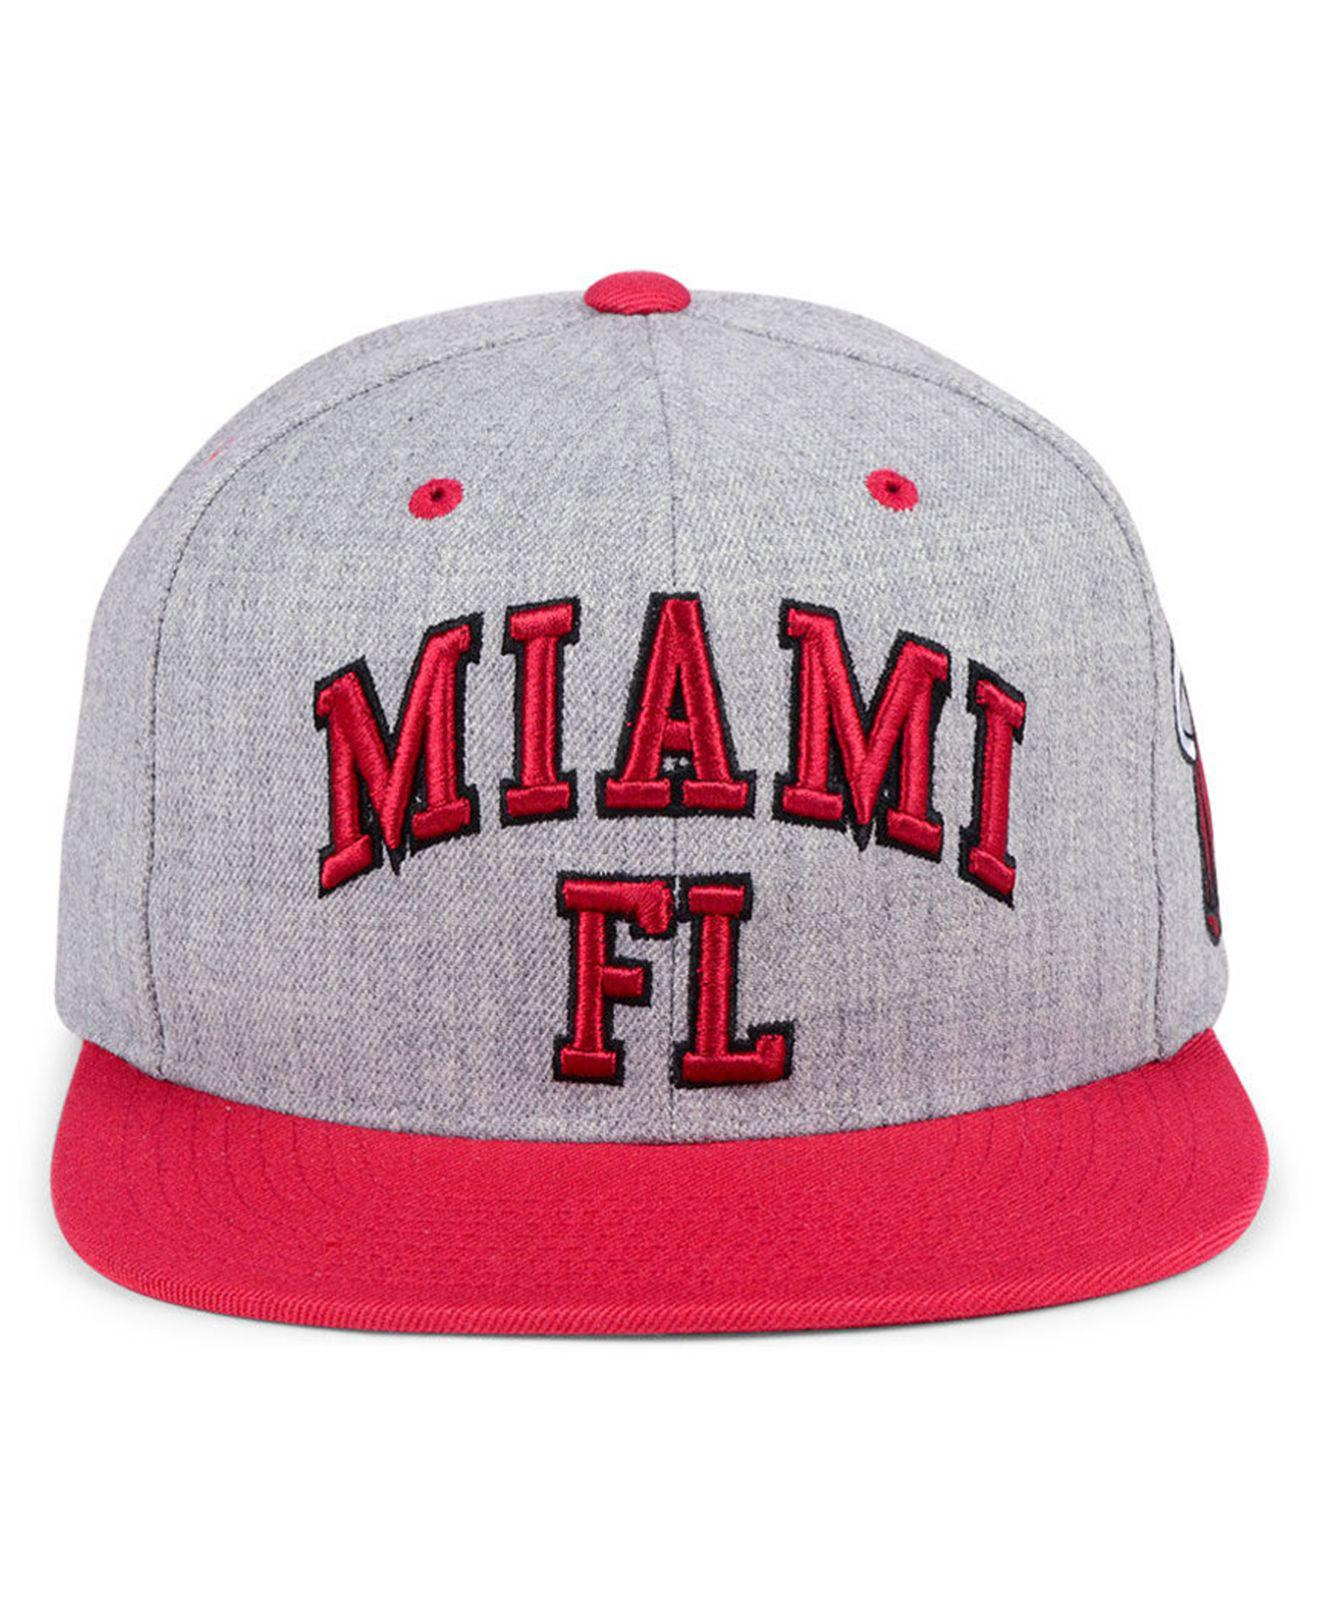 best website aa17f a7c26 Lyst - Mitchell   Ness Miami Heat Side Panel Cropped Snapback Cap for Men